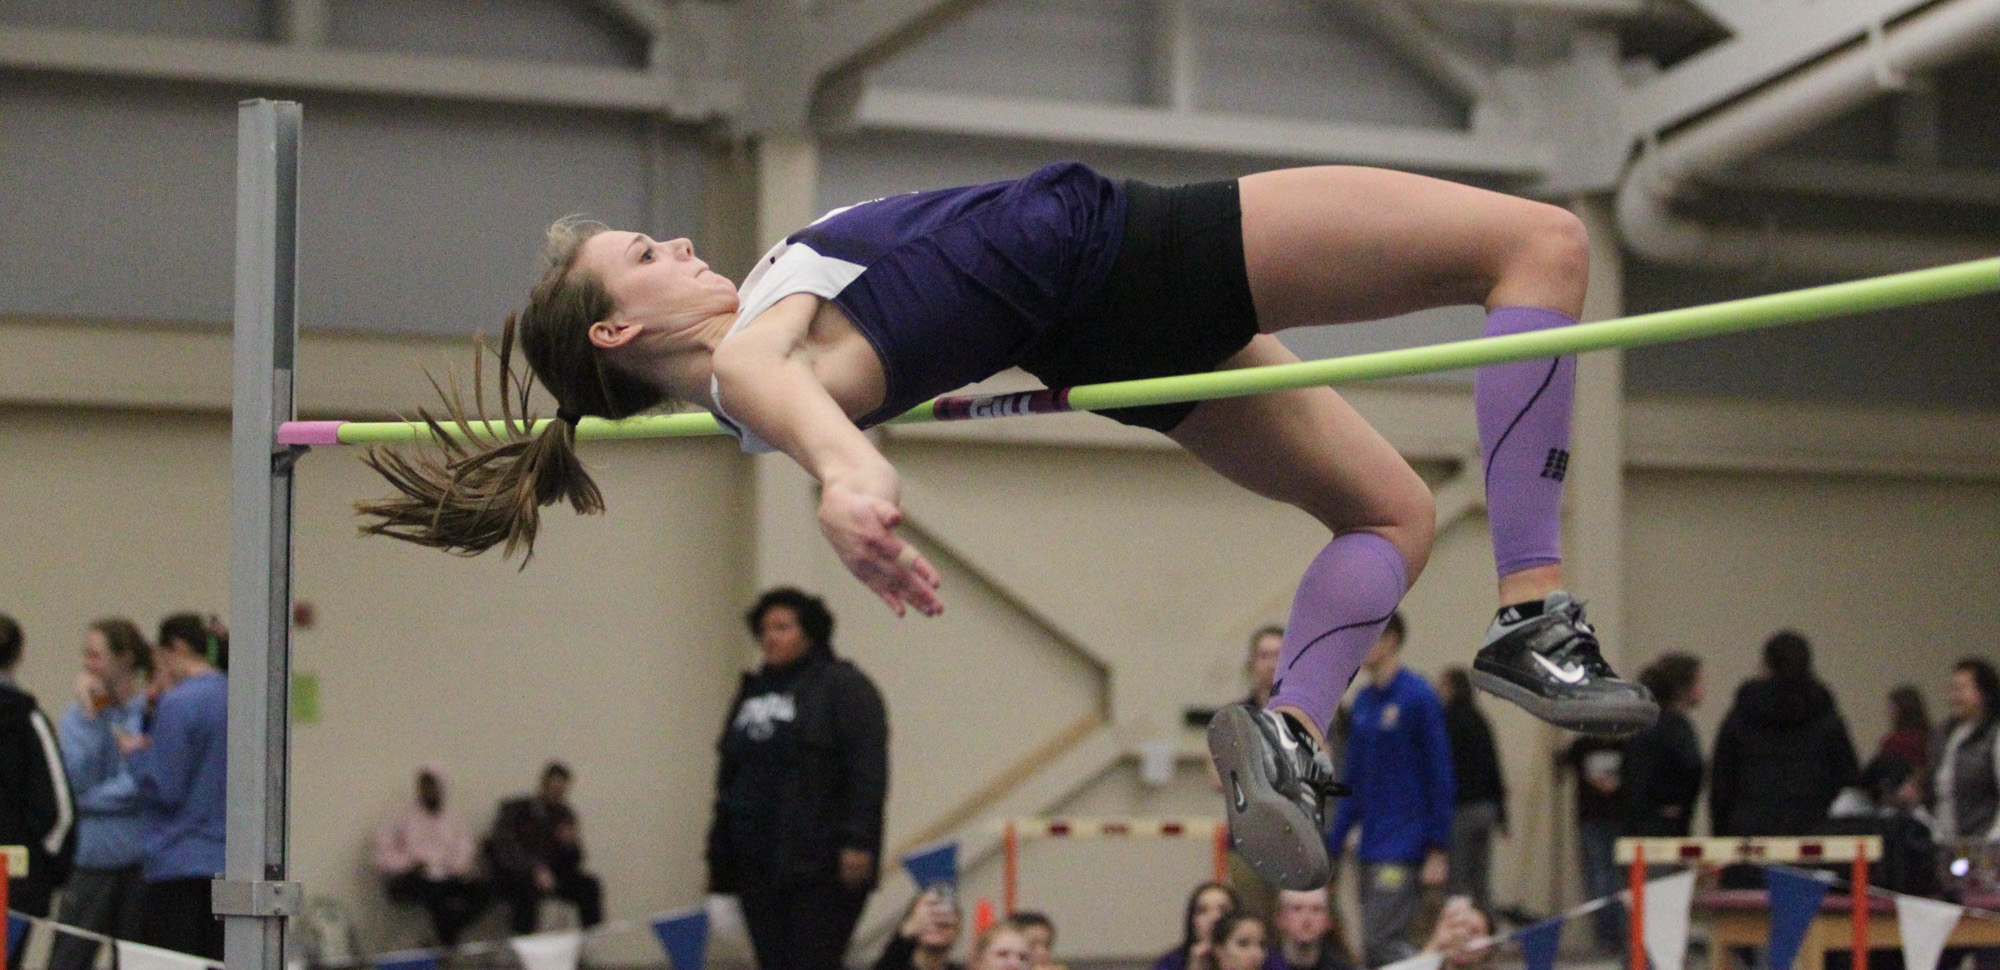 Caroline Banas finished second in the high jump and 15th in the long jump on Saturday for the Royals at the Moravian Indoor Invitational.